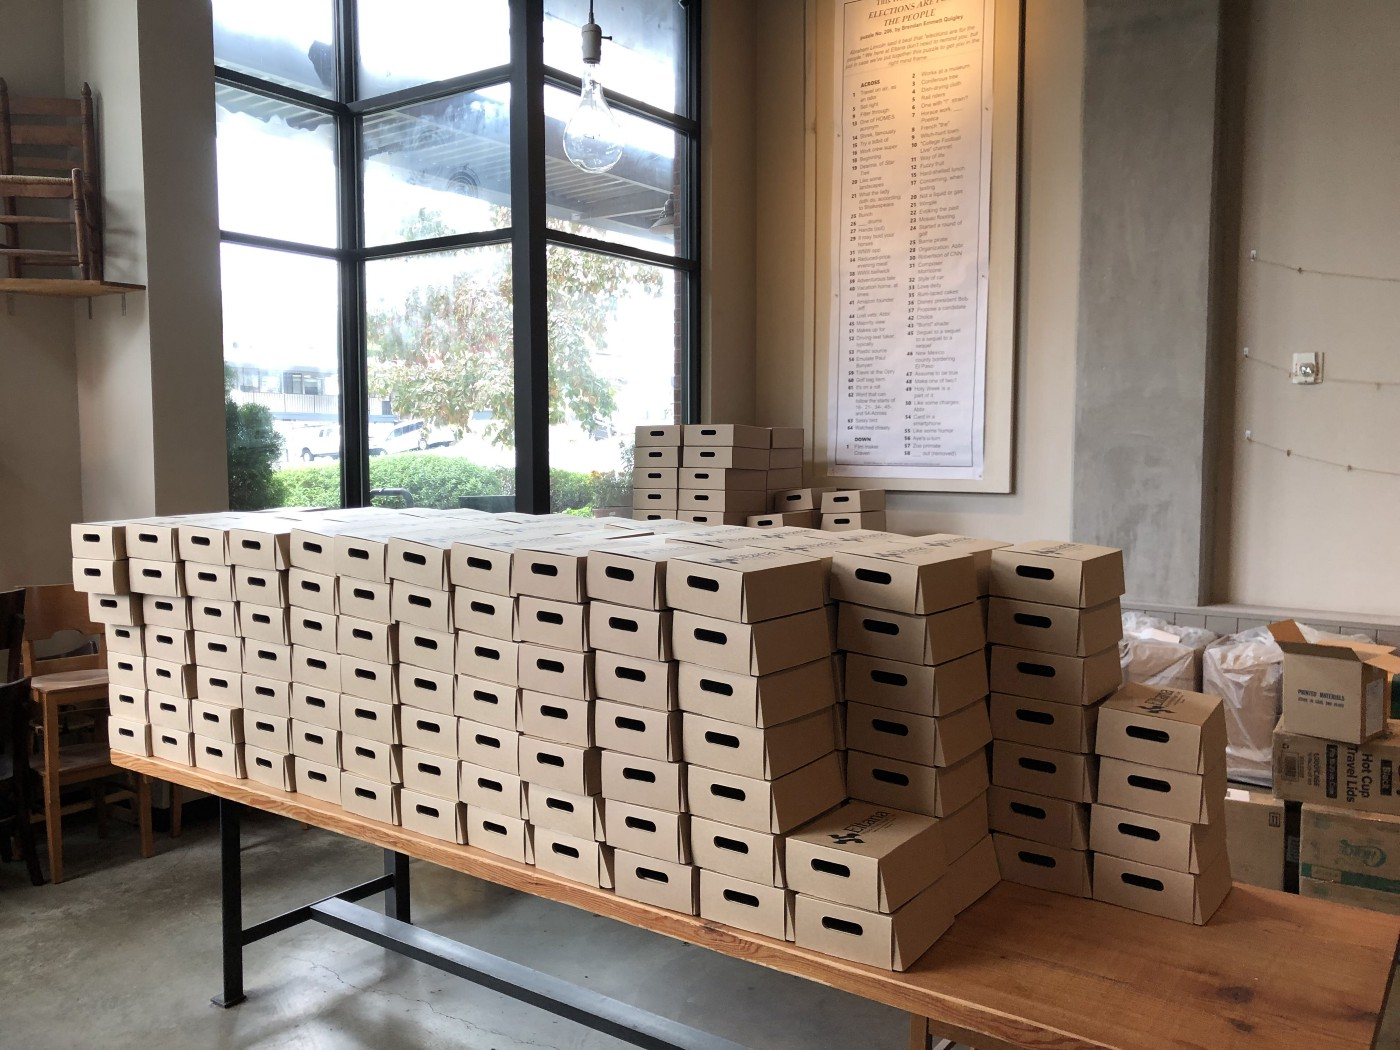 Boxes of bagels waiting to go out for delivery